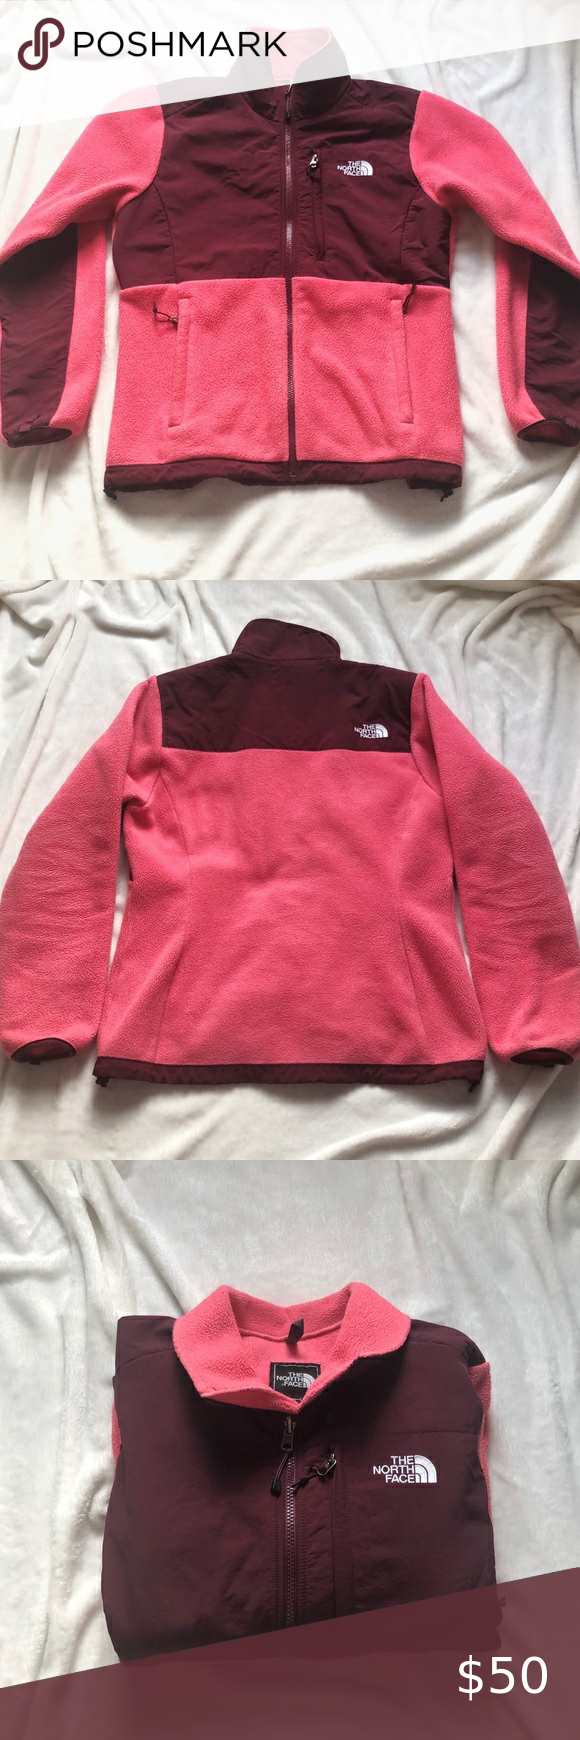 Pink And Maroon Classic The North Face Jacket In 2020 North Face Jacket Clothes Design Fashion Design [ 1740 x 580 Pixel ]